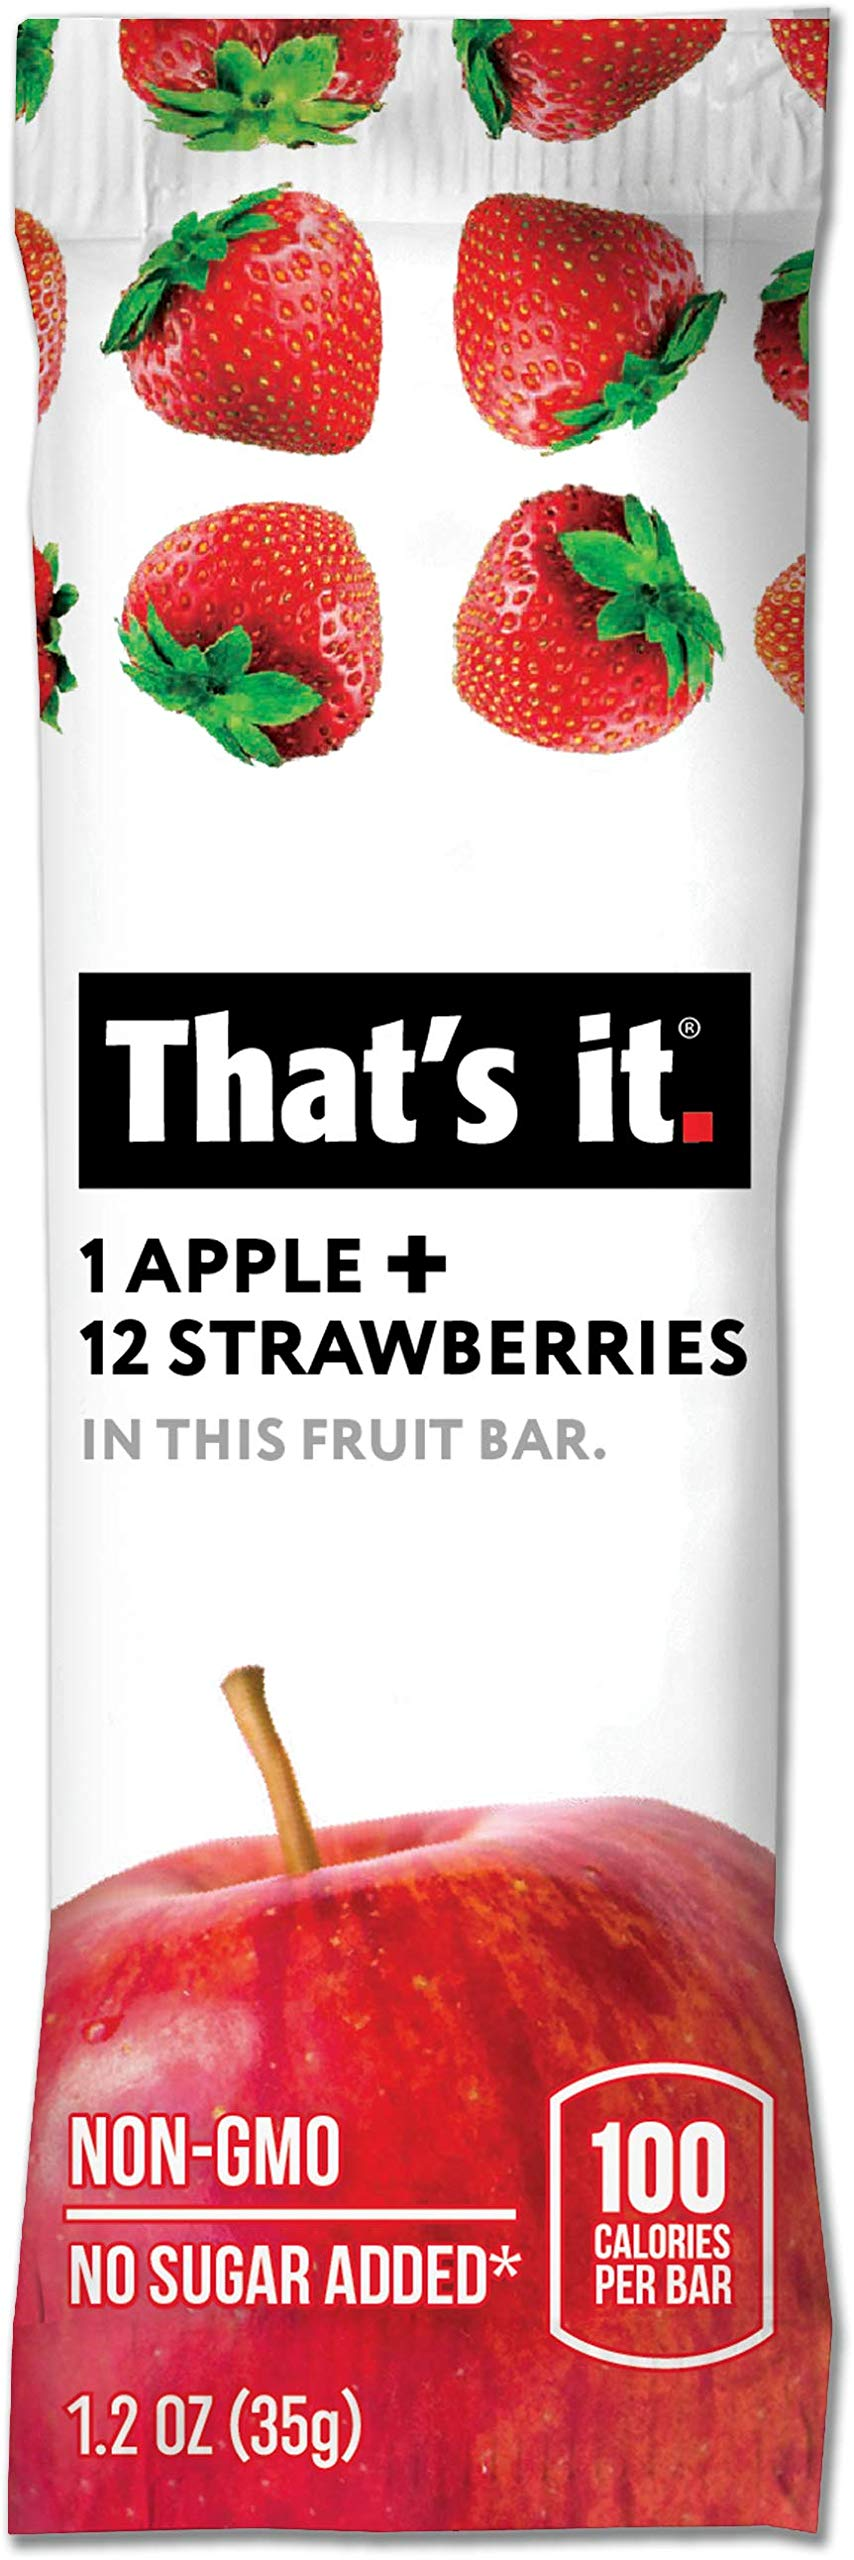 That's It Apple Strawberry Snack Bar Gluten Free 1.2 oz, Pack of 72